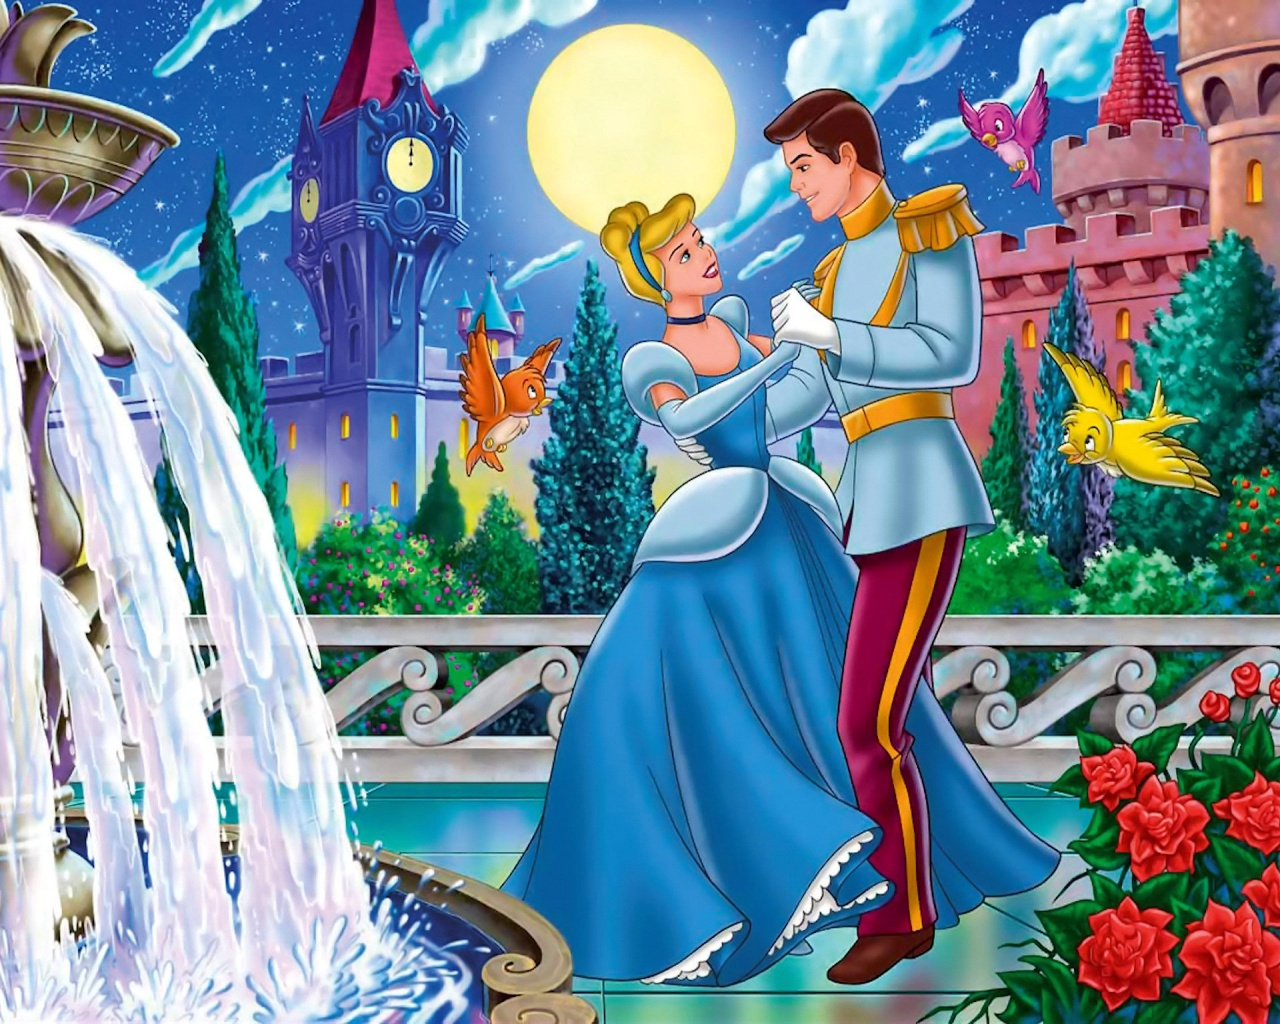 Cinderella Story For Child